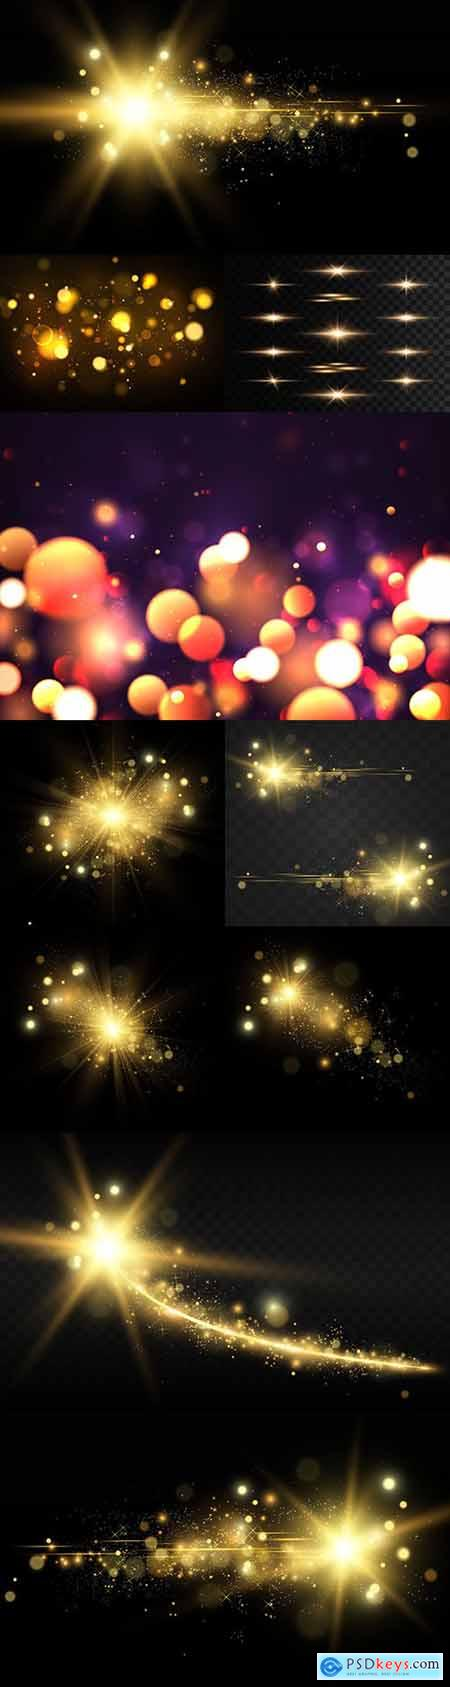 Golden bright star light effect design illustration